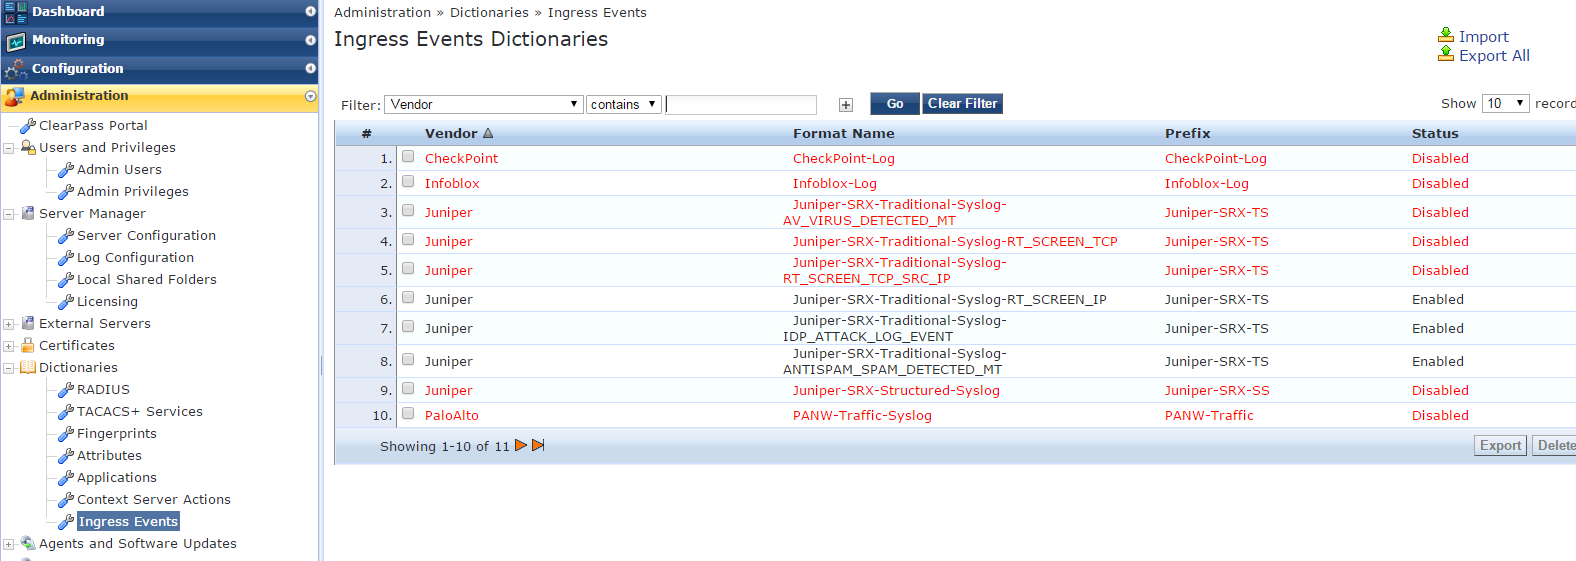 Example 3: Configuring Threat and Attack Detection and Notification